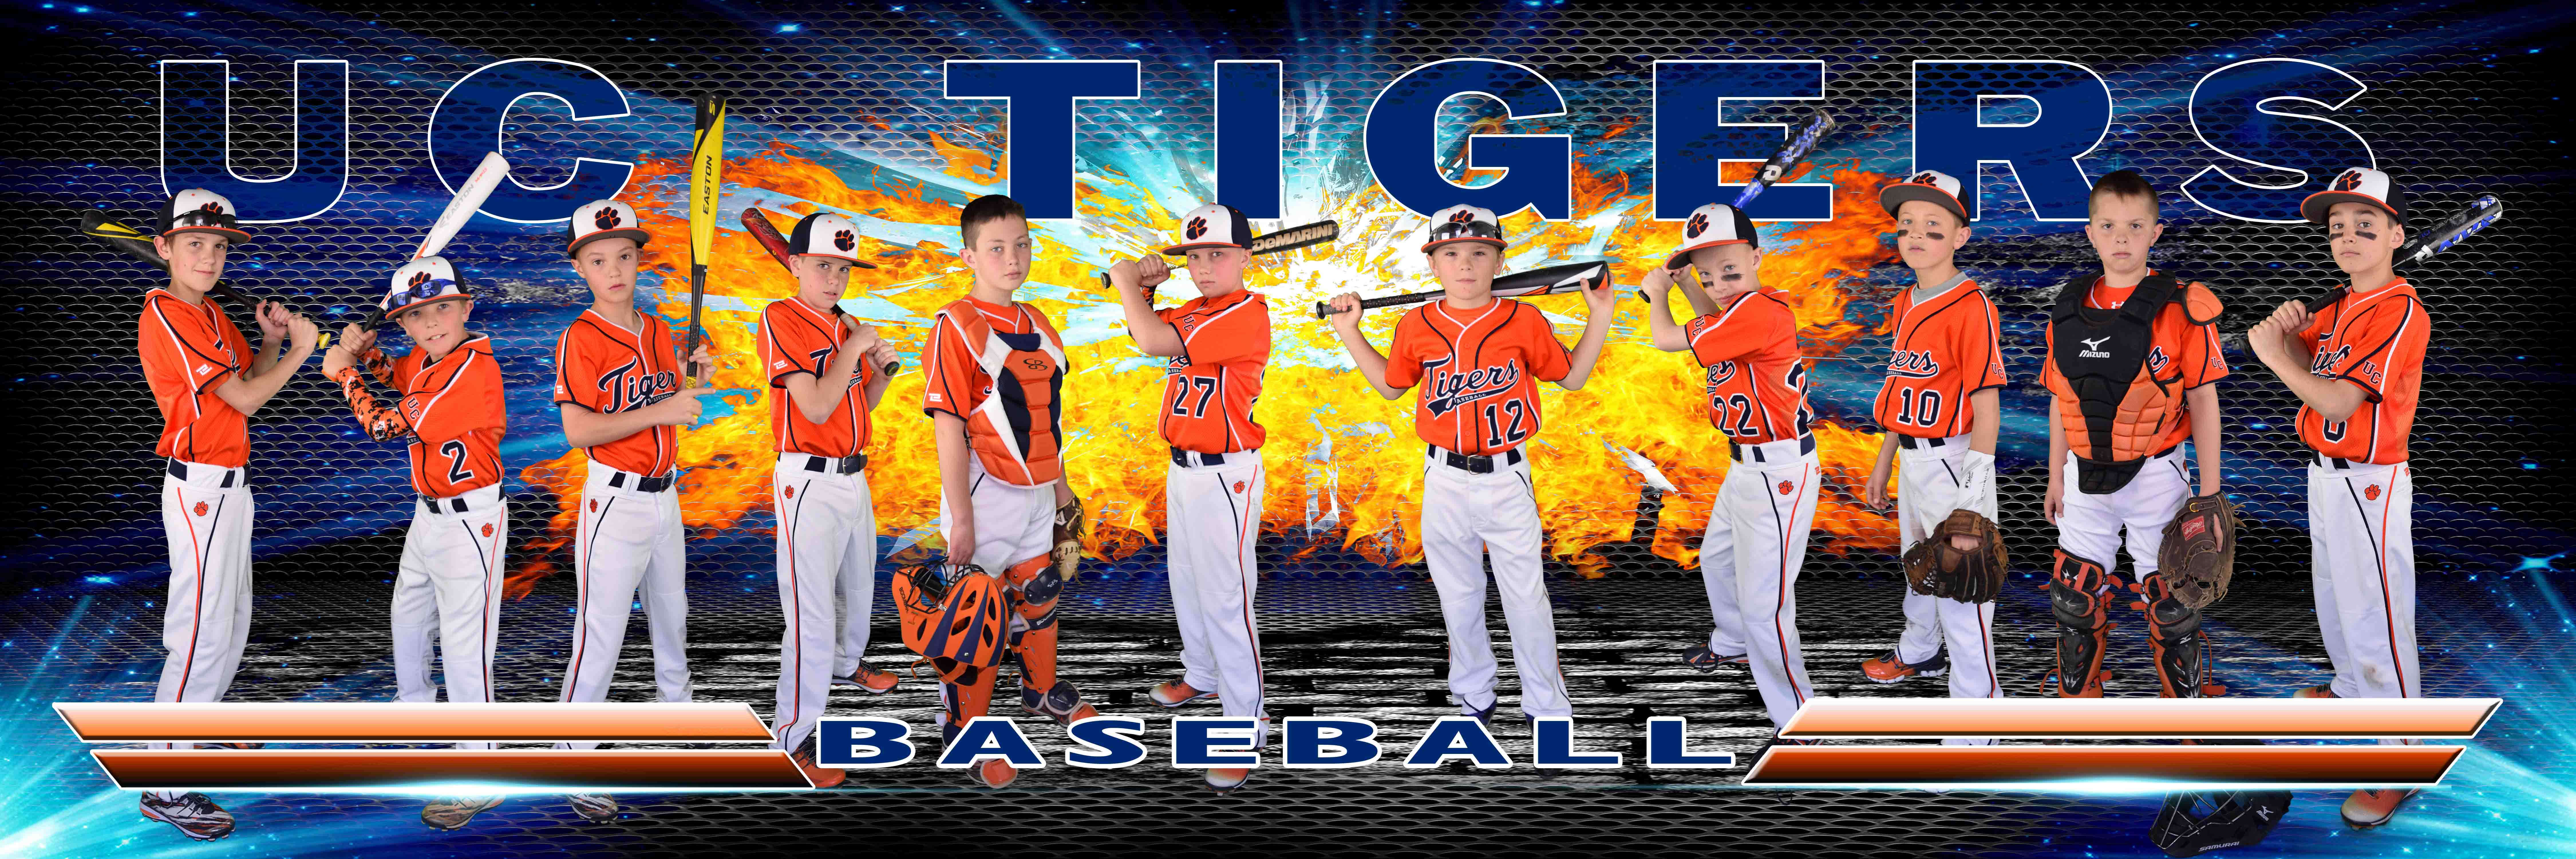 Team Templates - Awesome Sport Banners inside Sports Banner Templates